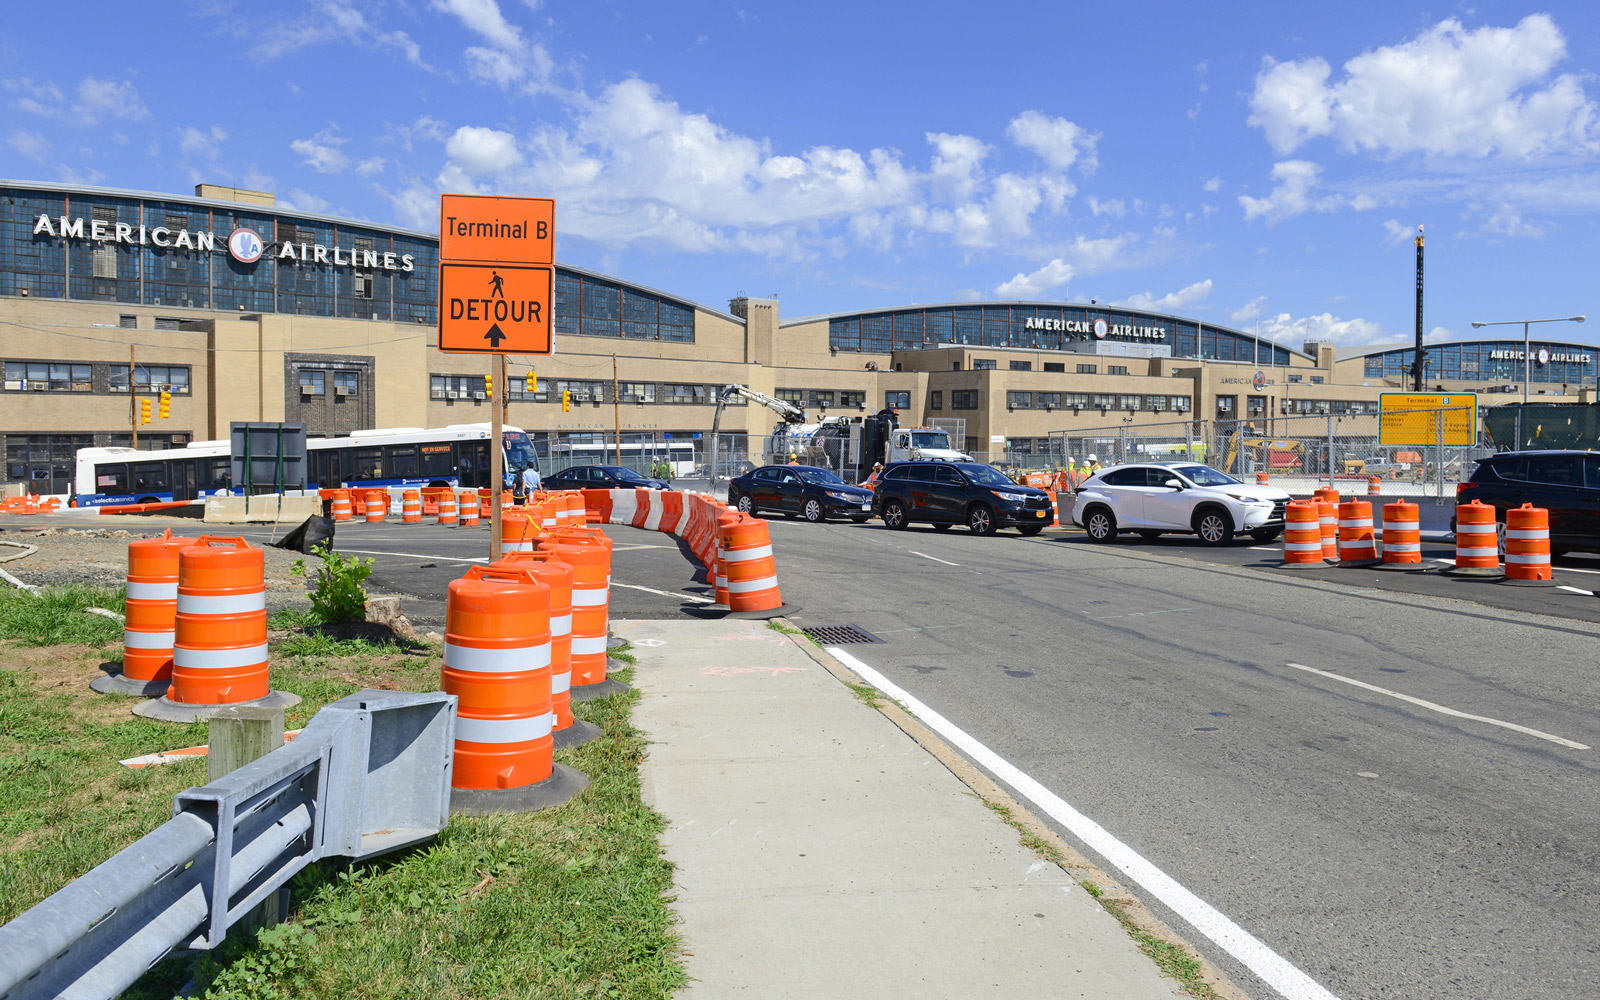 Traffic delays and construction at LaGuardia Airport in New York